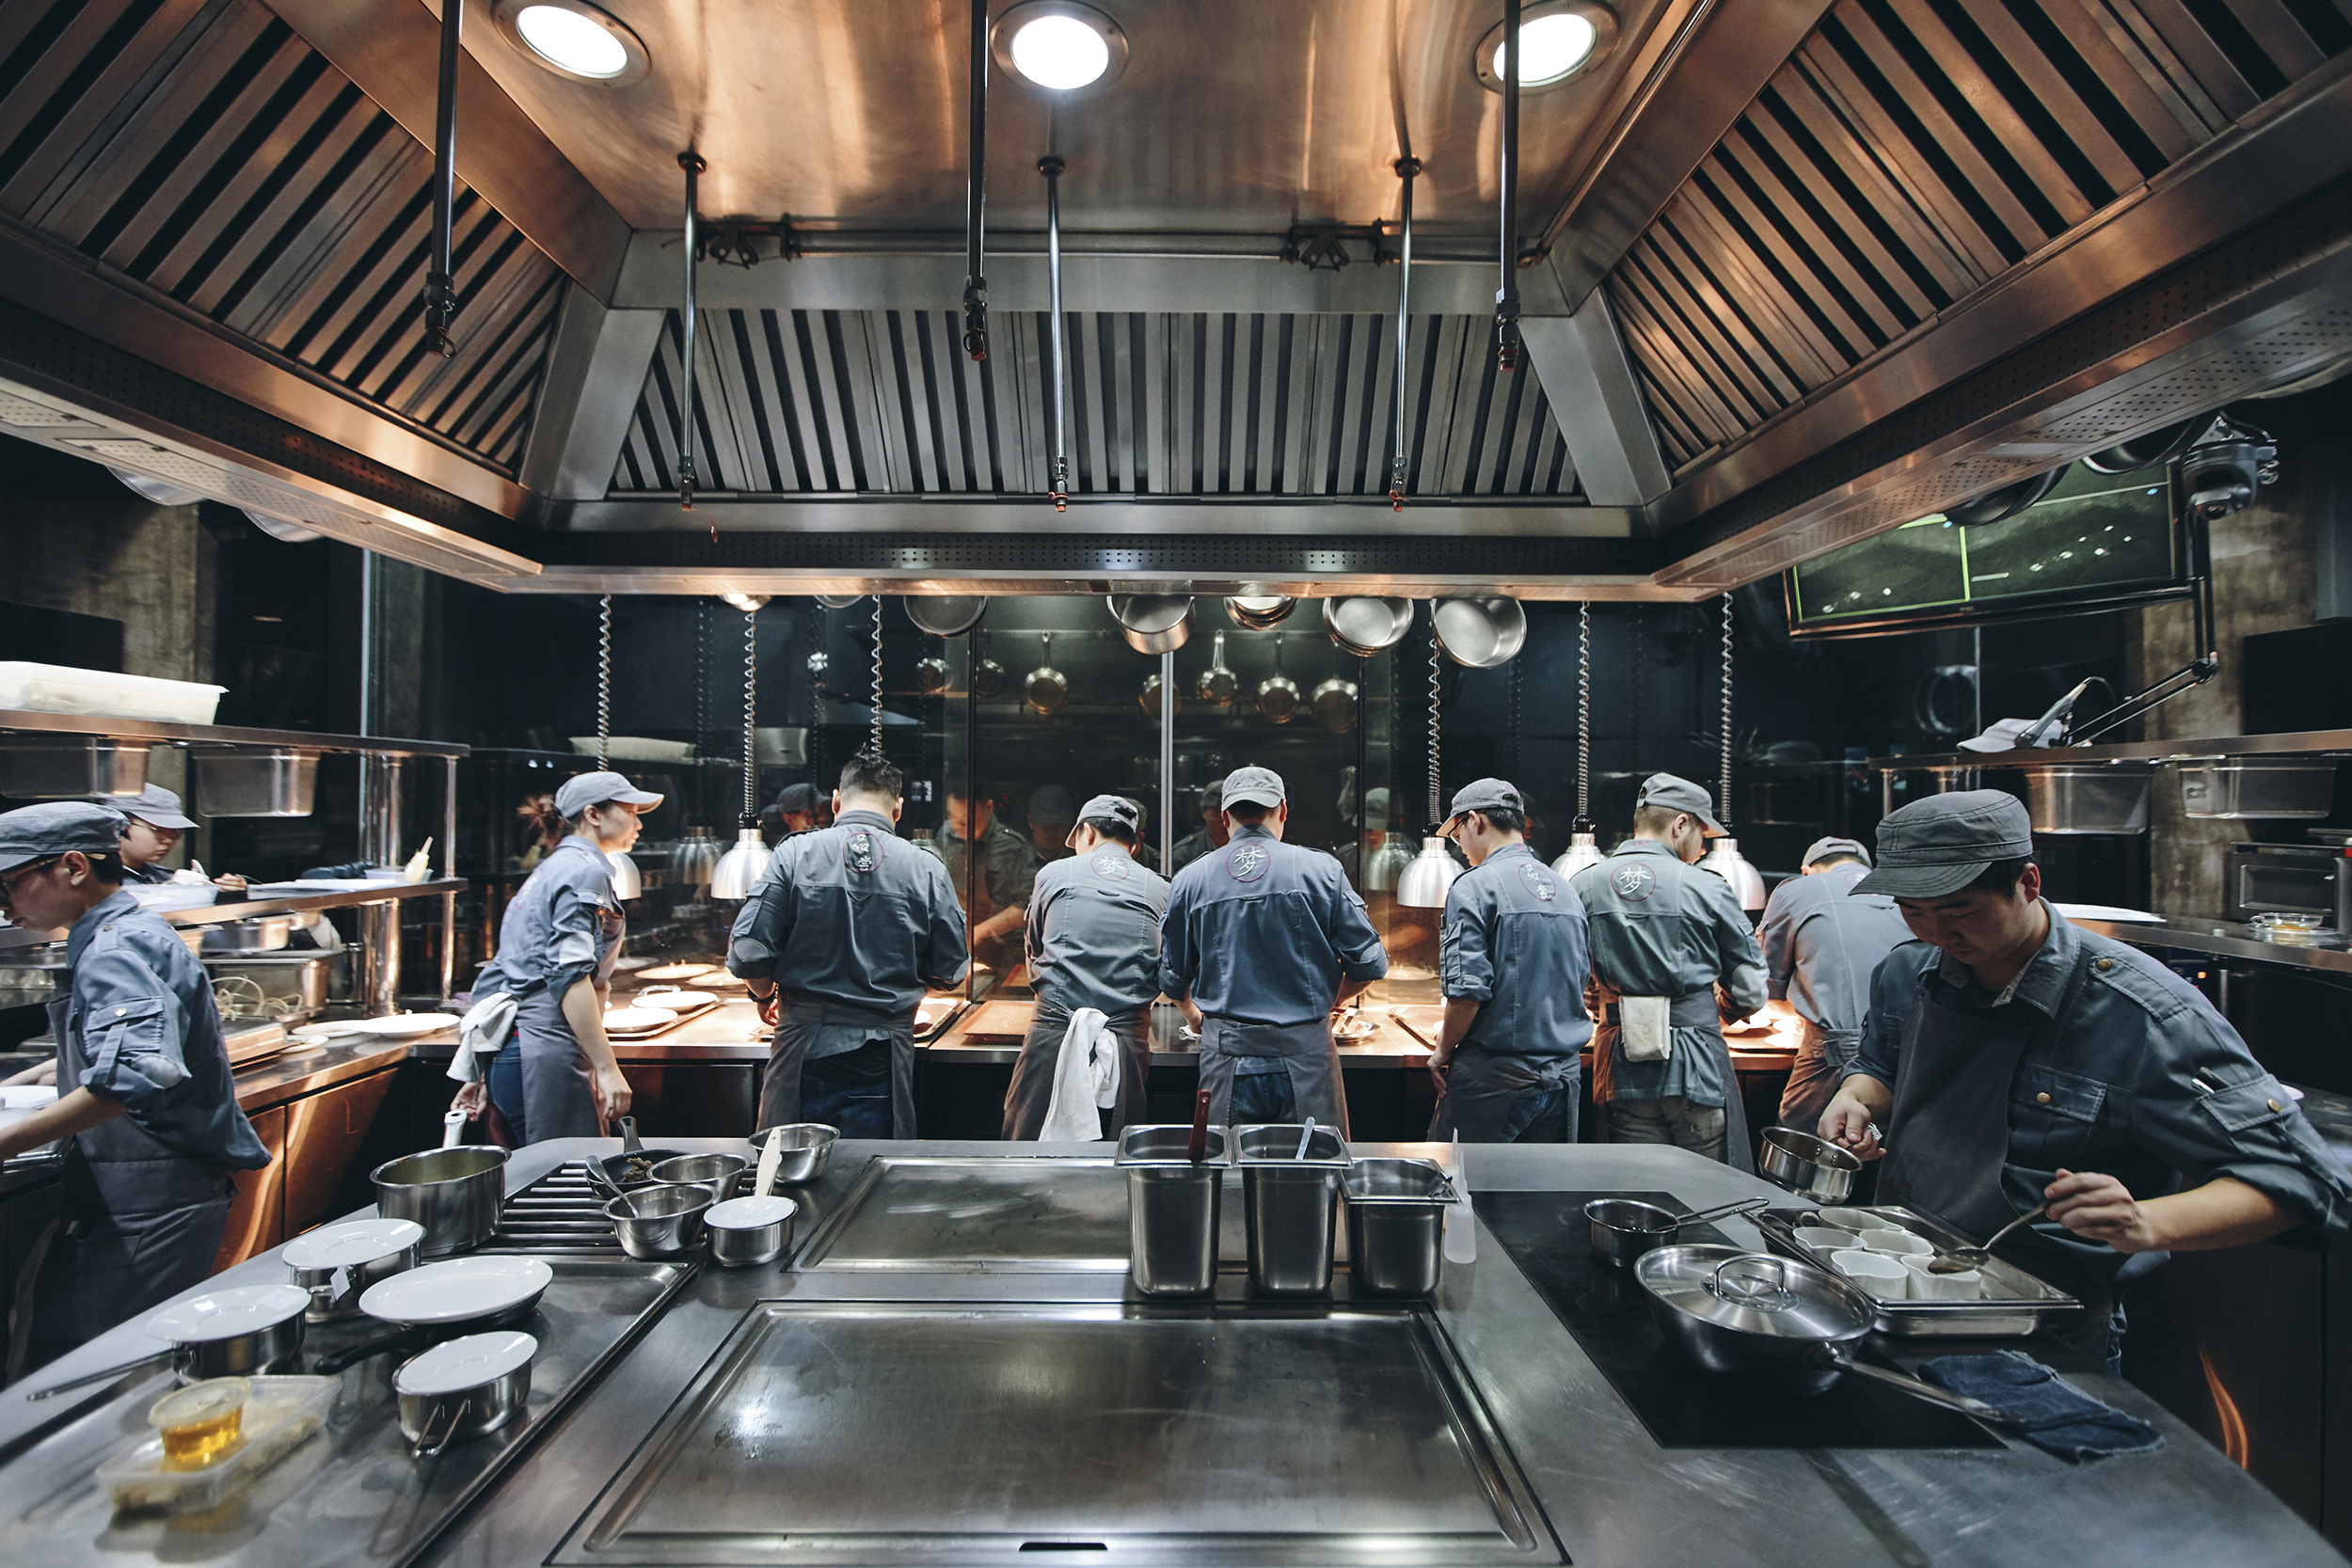 shanghai-chefs-thom-rigney-professional-photographer-china-travel-food-012